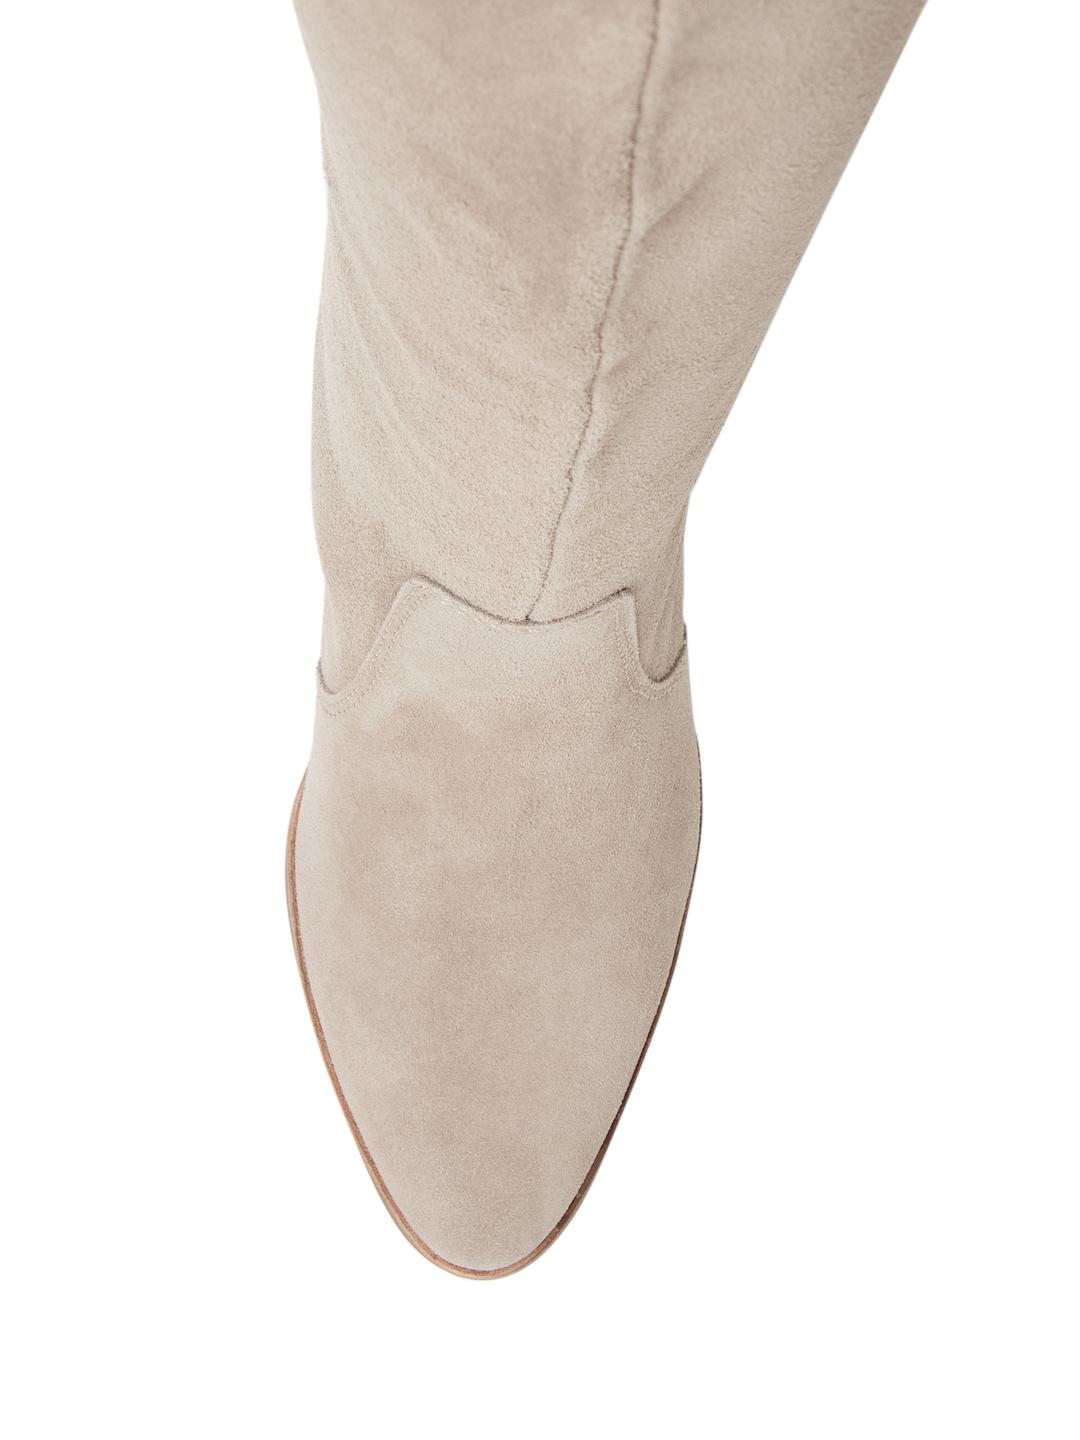 Dolce Vita Leather Cameo High Heel Boot in Taupe (Brown)